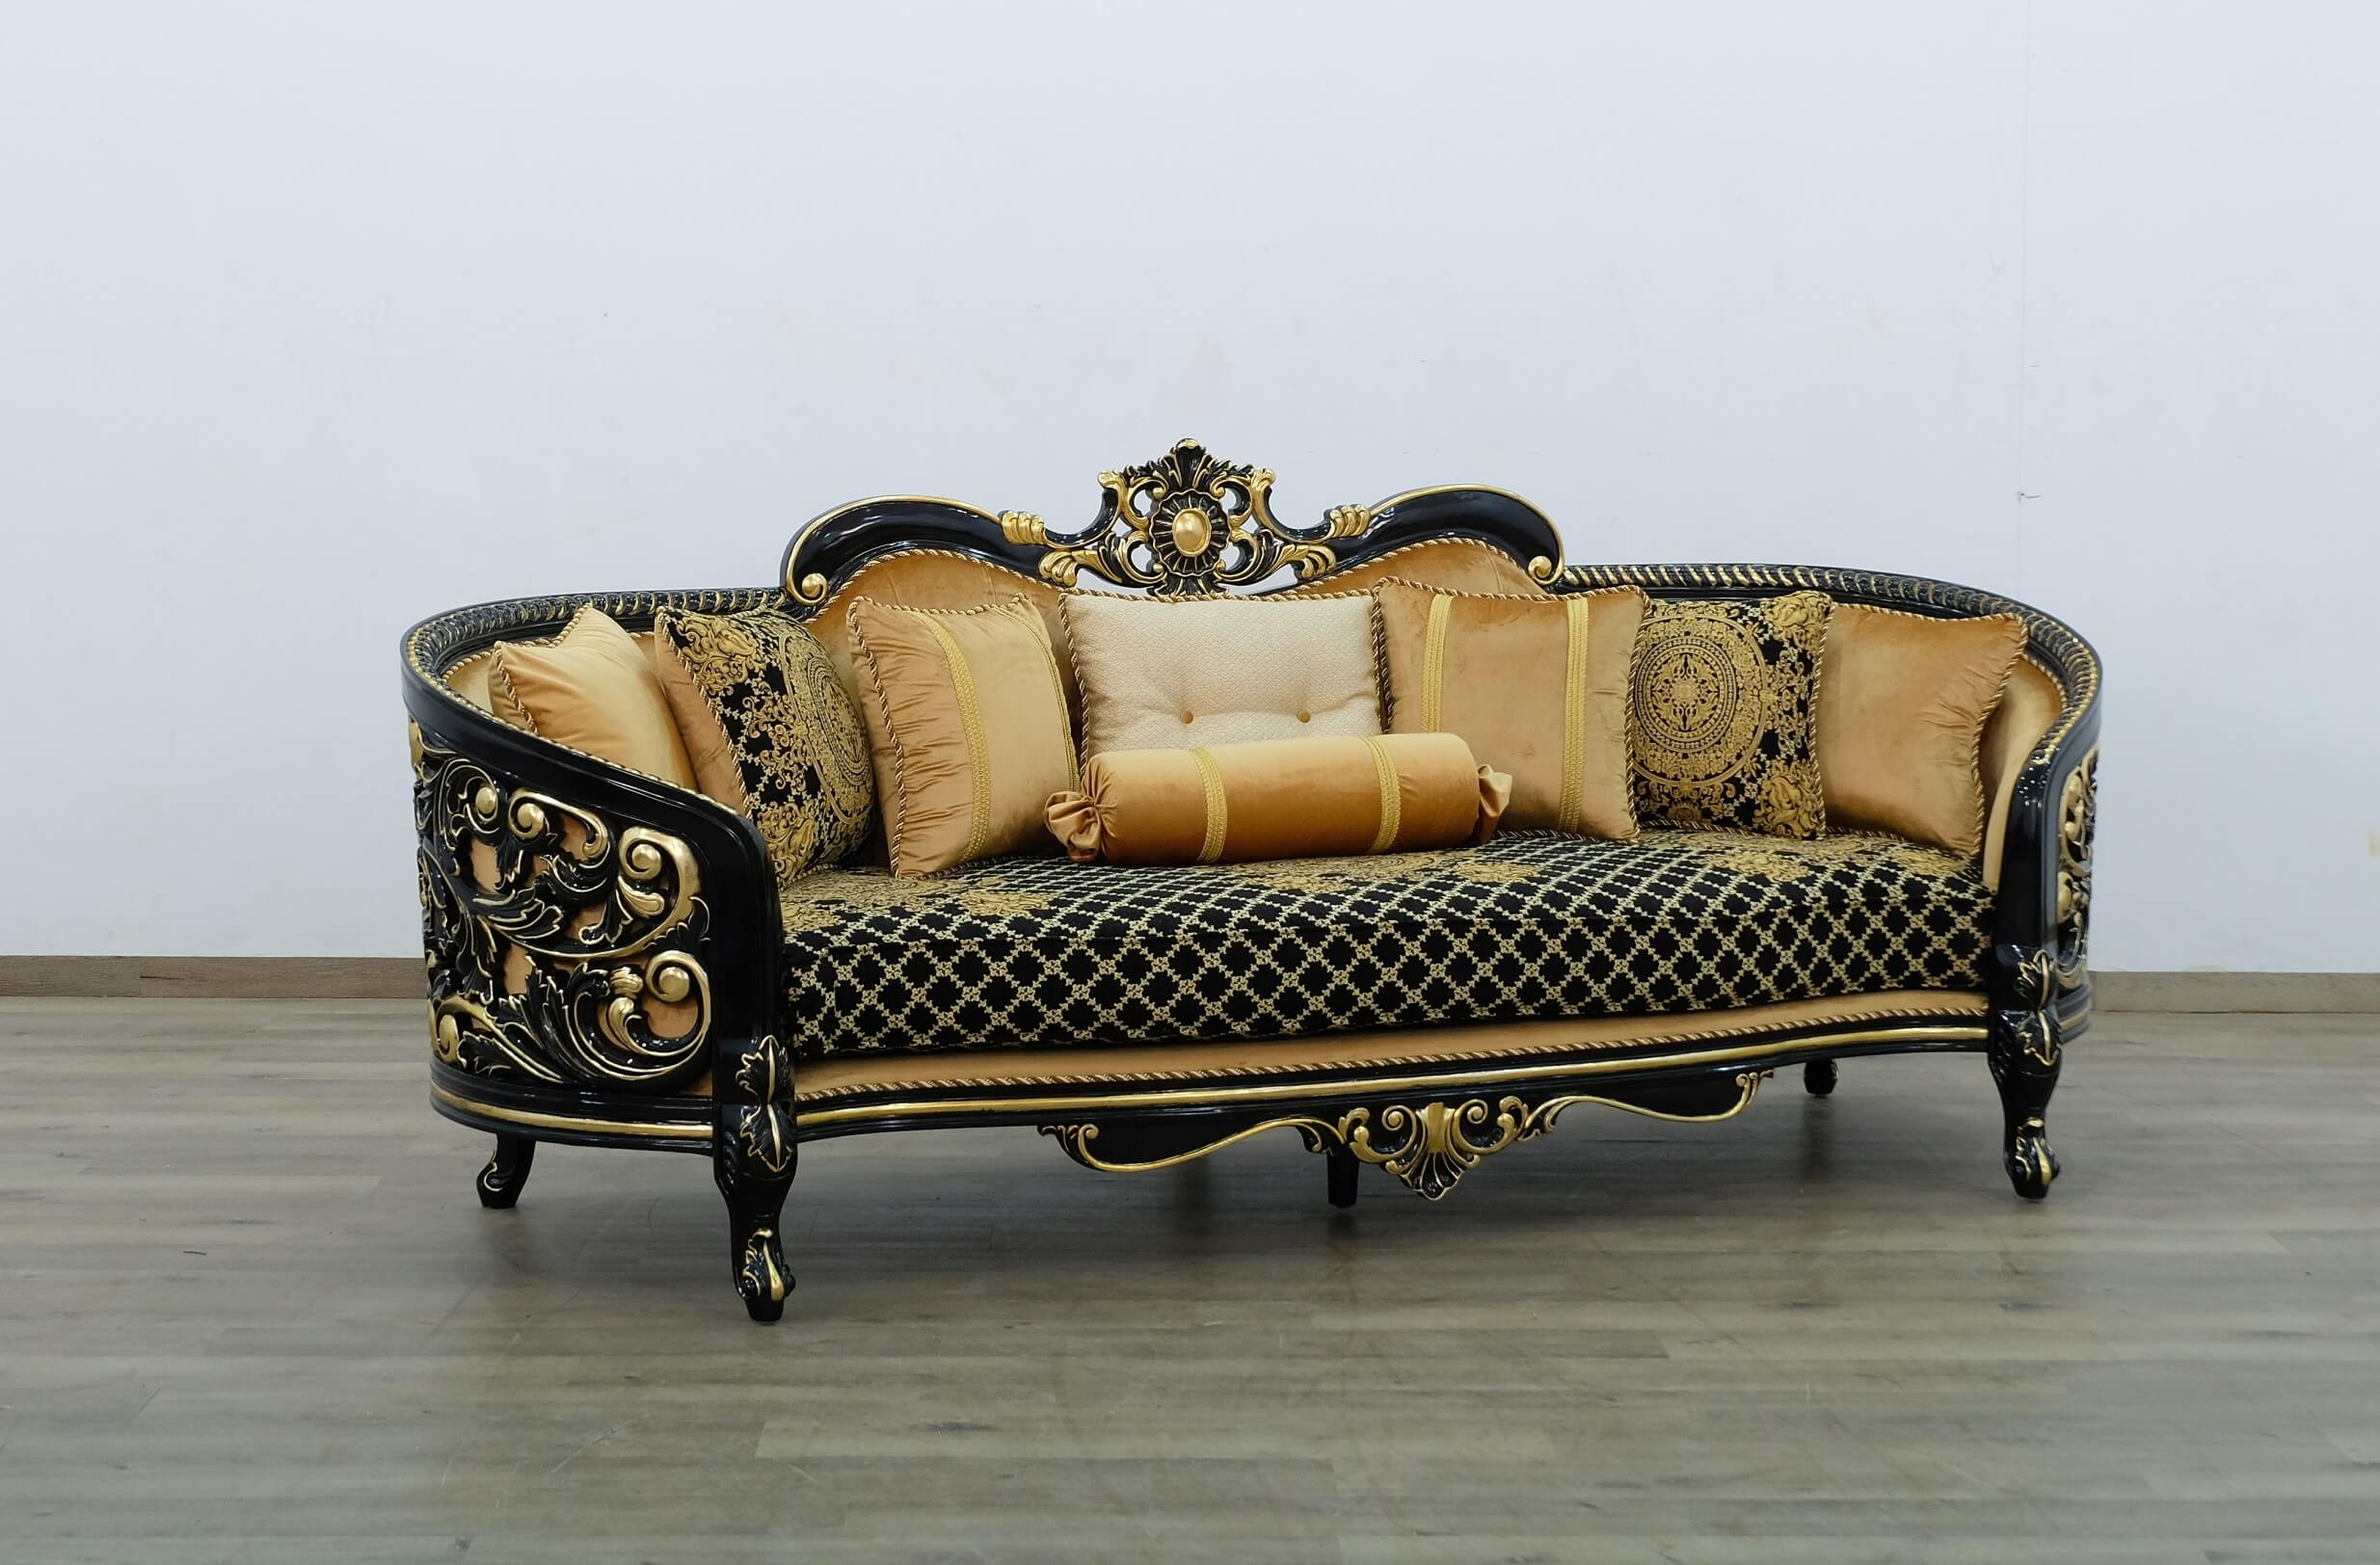 European Furniture Bellagio Iii Wood Trim Gold Black Sofa